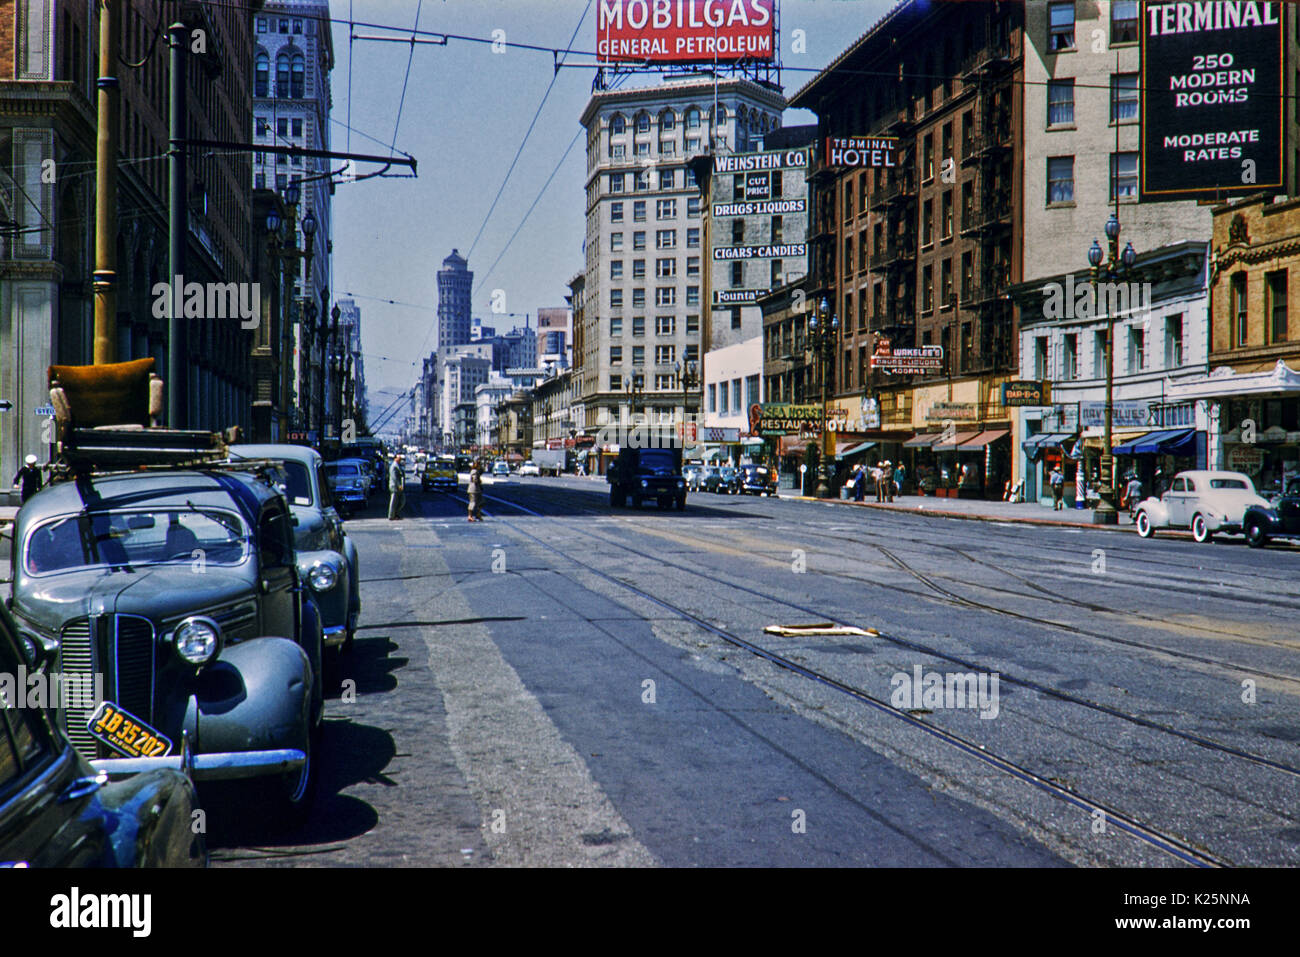 San Francisco Street Scene 1950s Terminal Hotel and Mobil Gas sign. - Stock Image